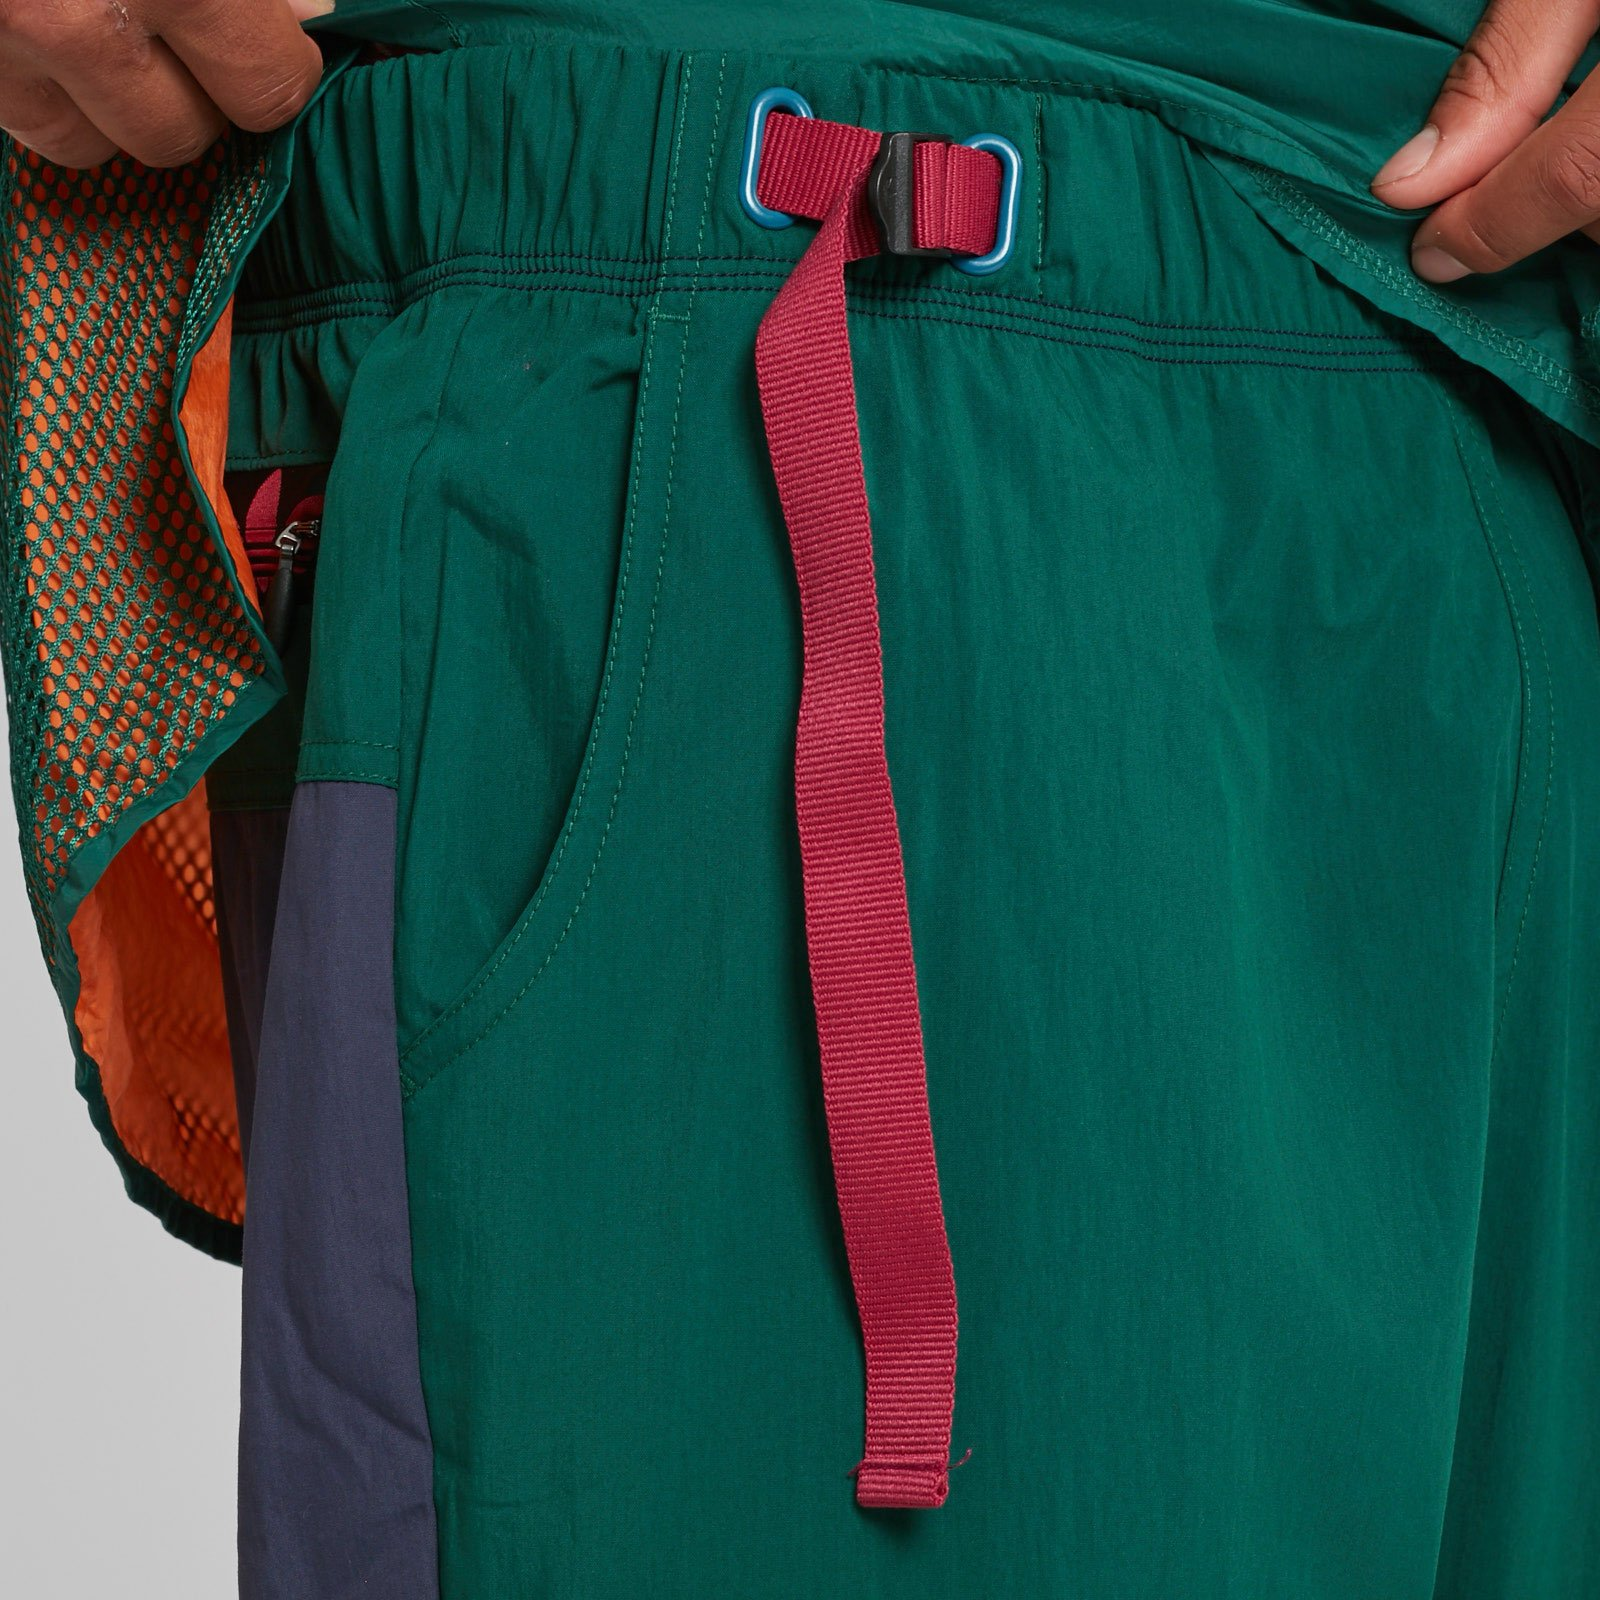 Adidas Originals 'ATRIC' Pants